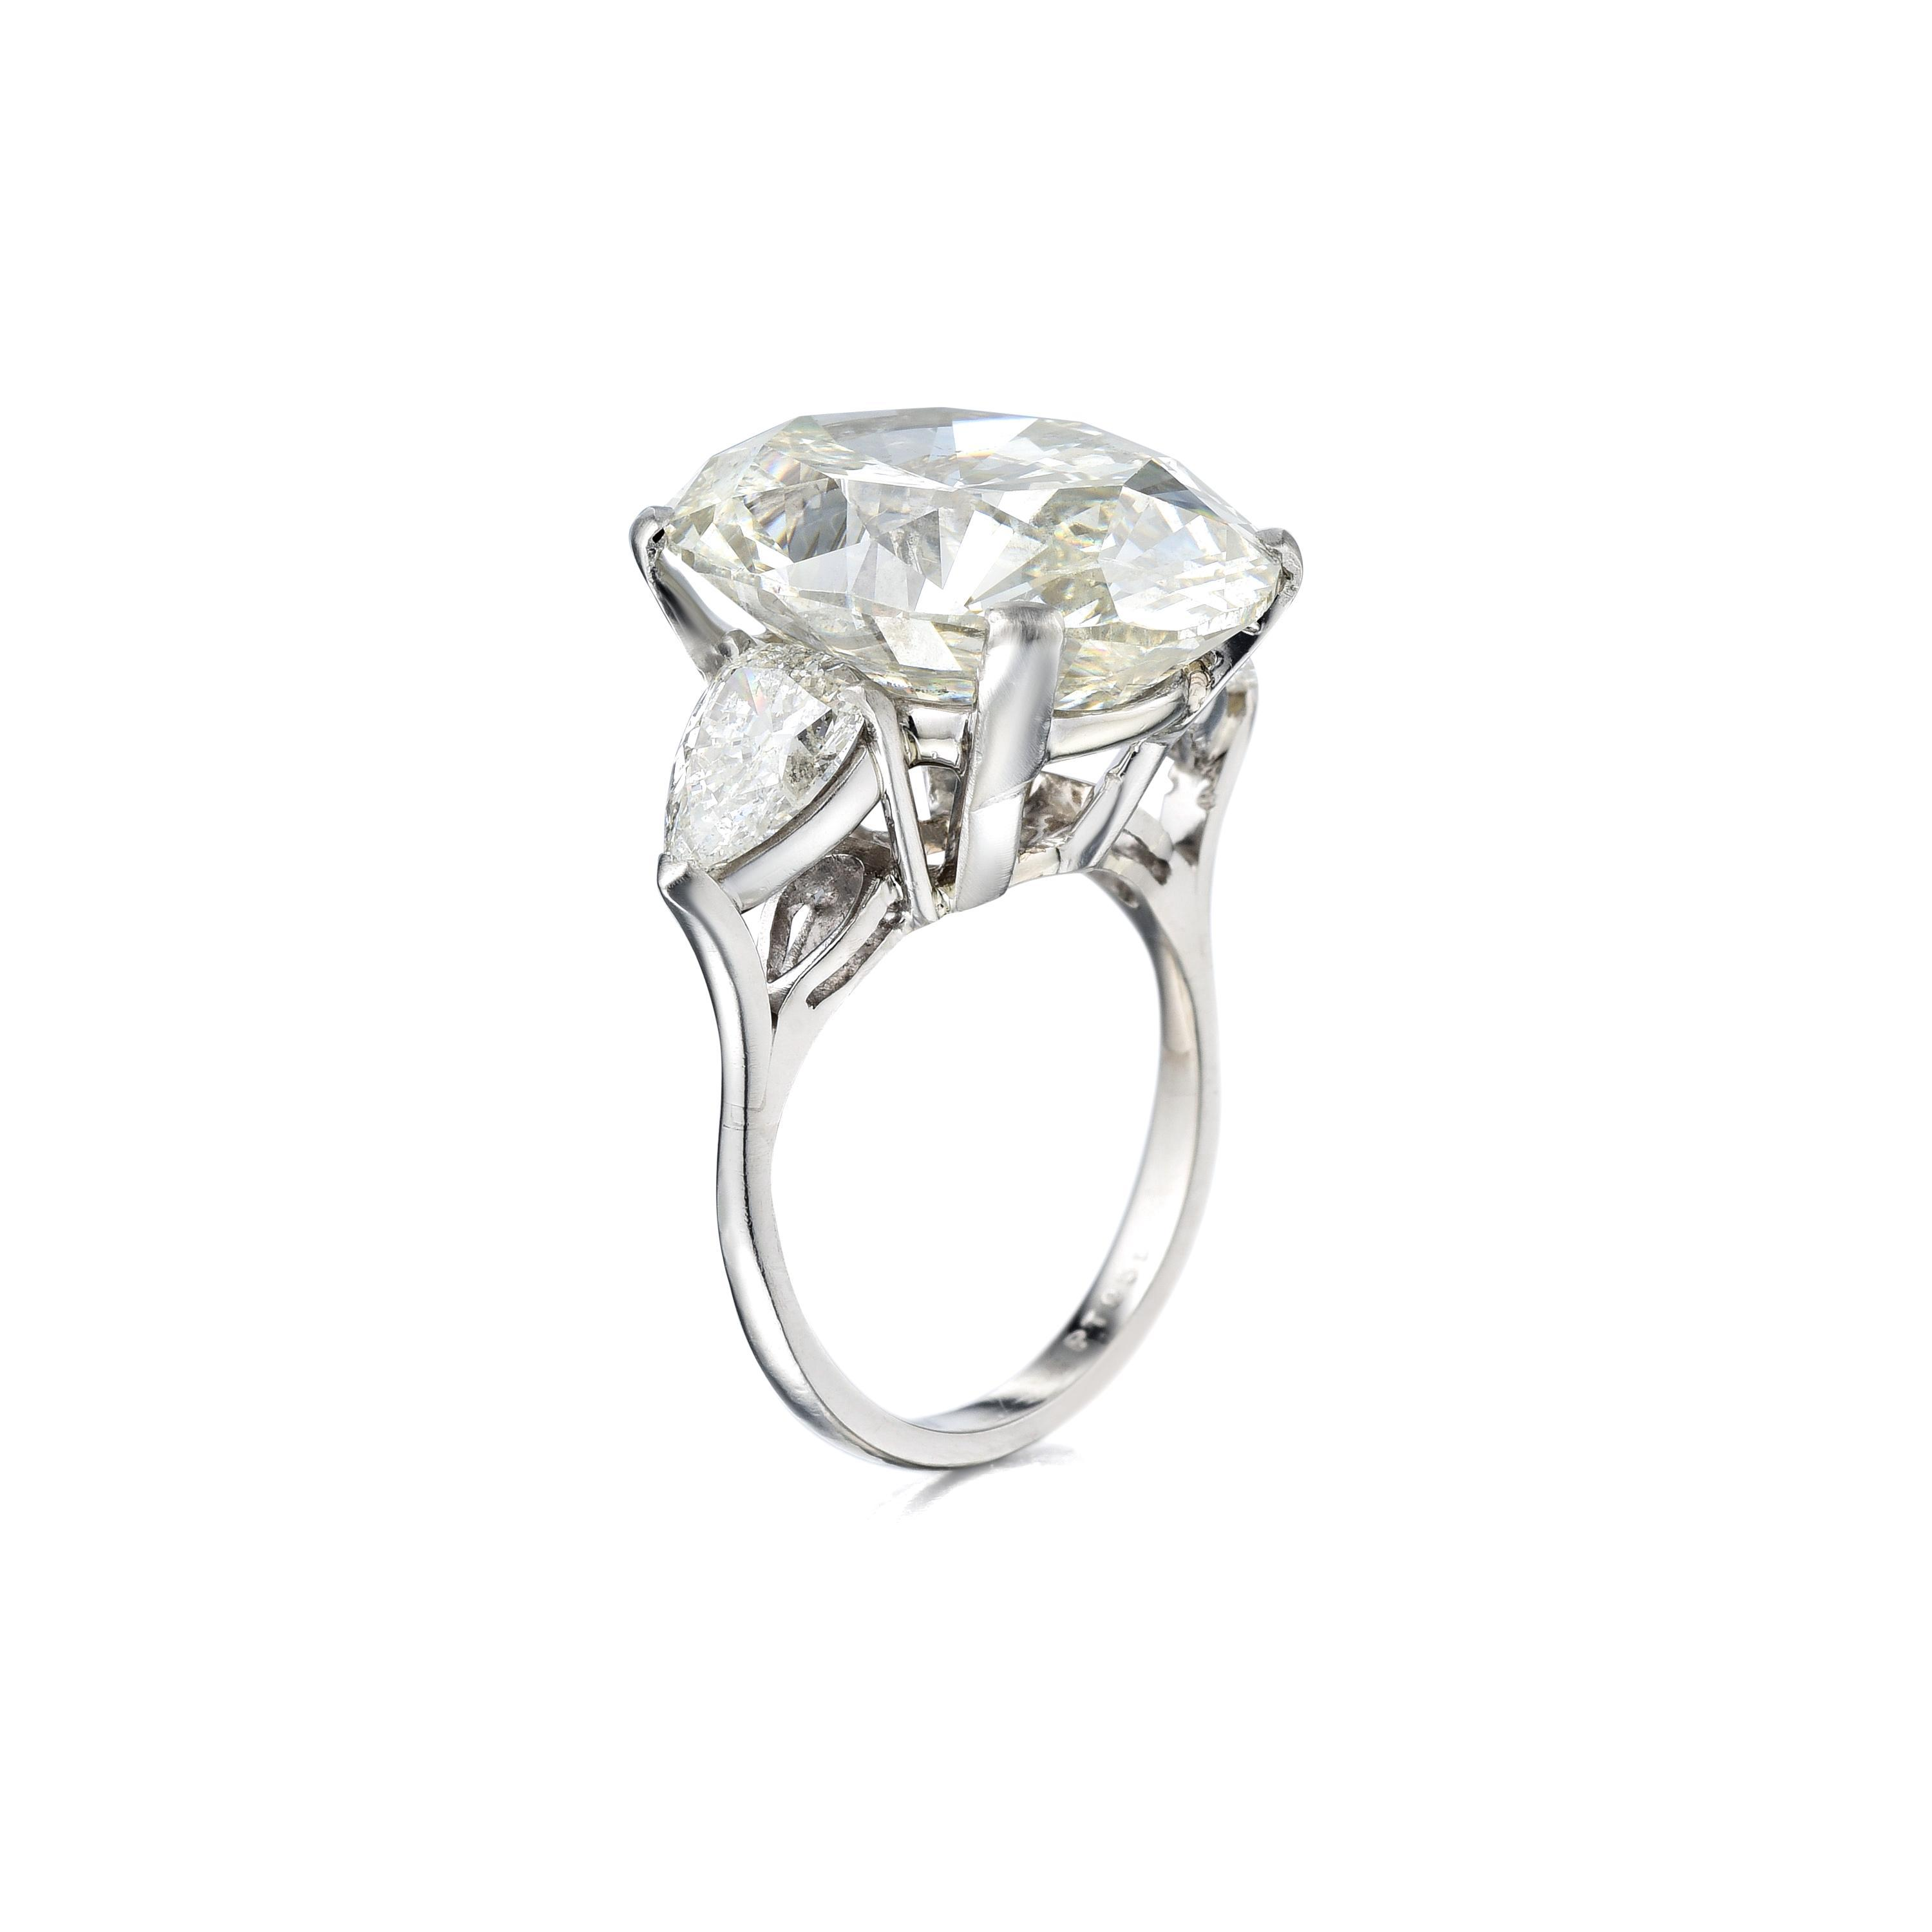 A 17.13ct Oval-Cut Diamond Ring